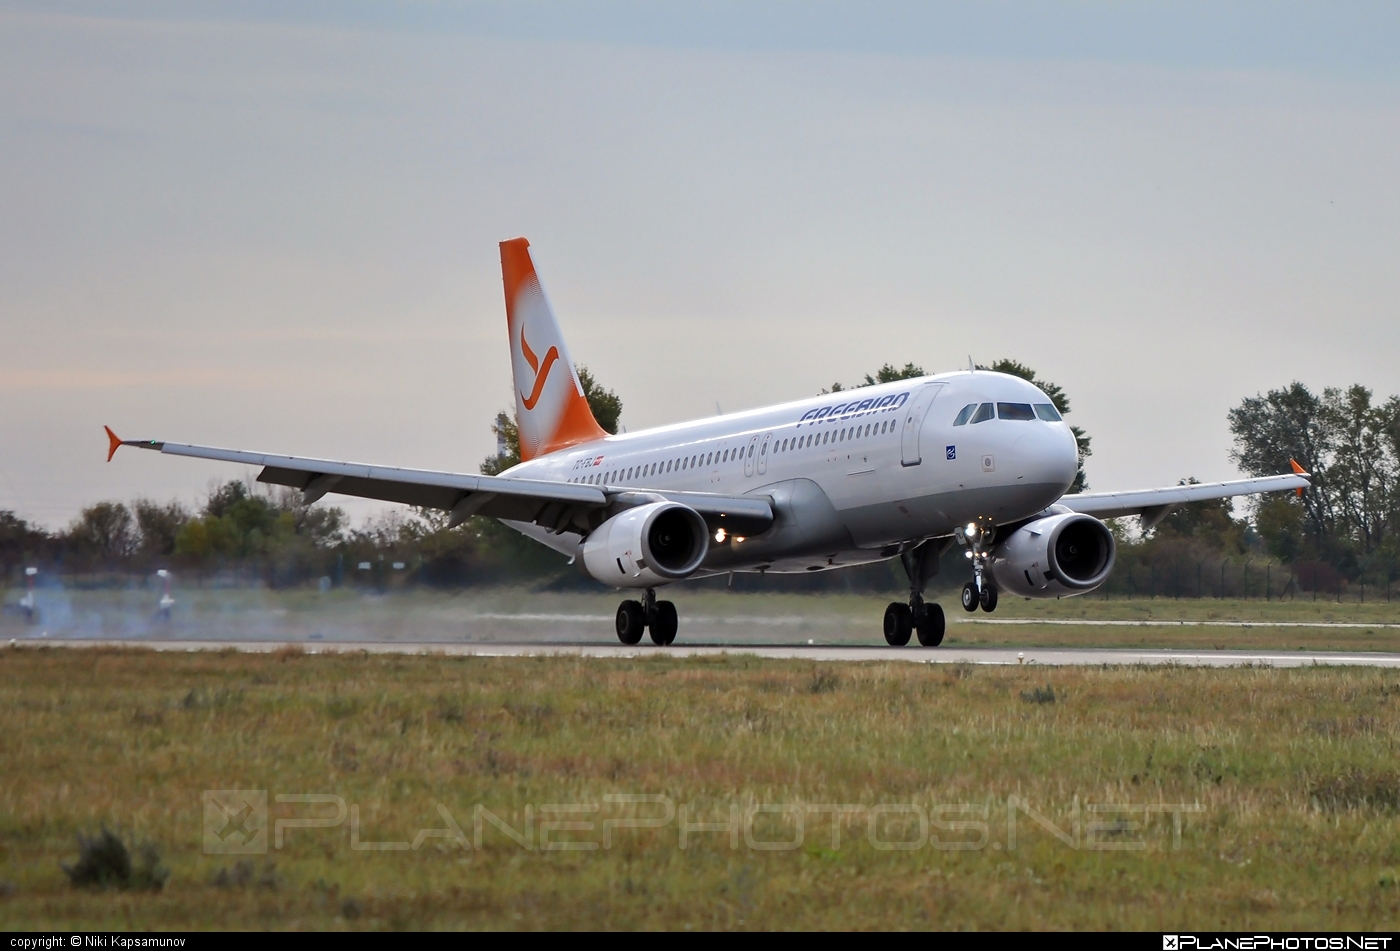 Airbus A320-232 - TC-FBJ operated by Freebird Airlines #a320 #a320family #airbus #airbus320